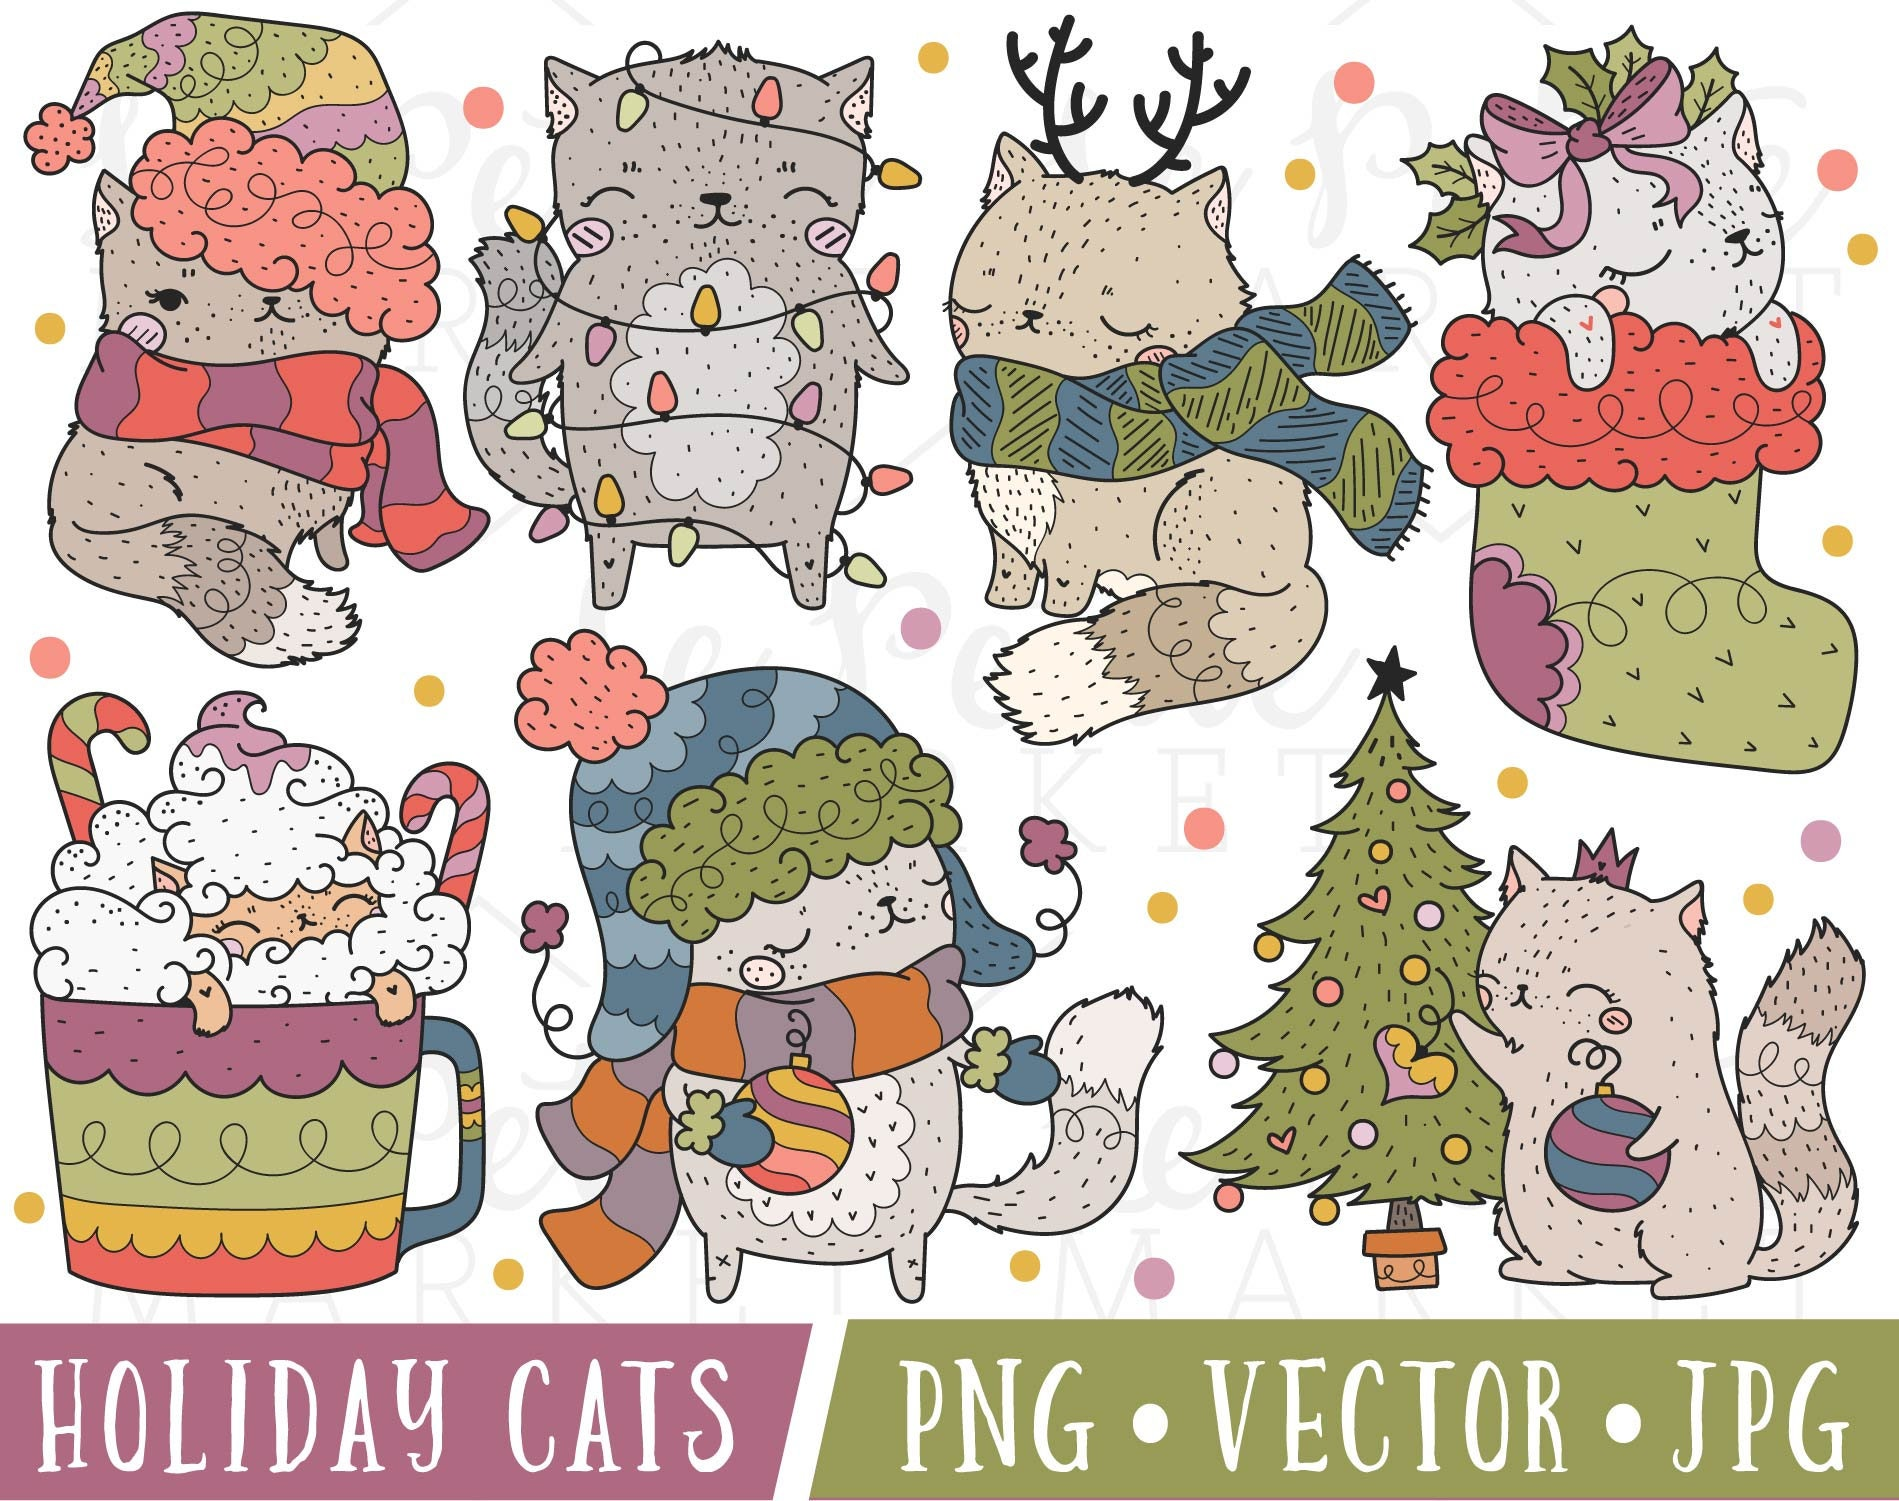 Holiday Cats Clipart Images Christmas Cat Clipart Cat | Etsy